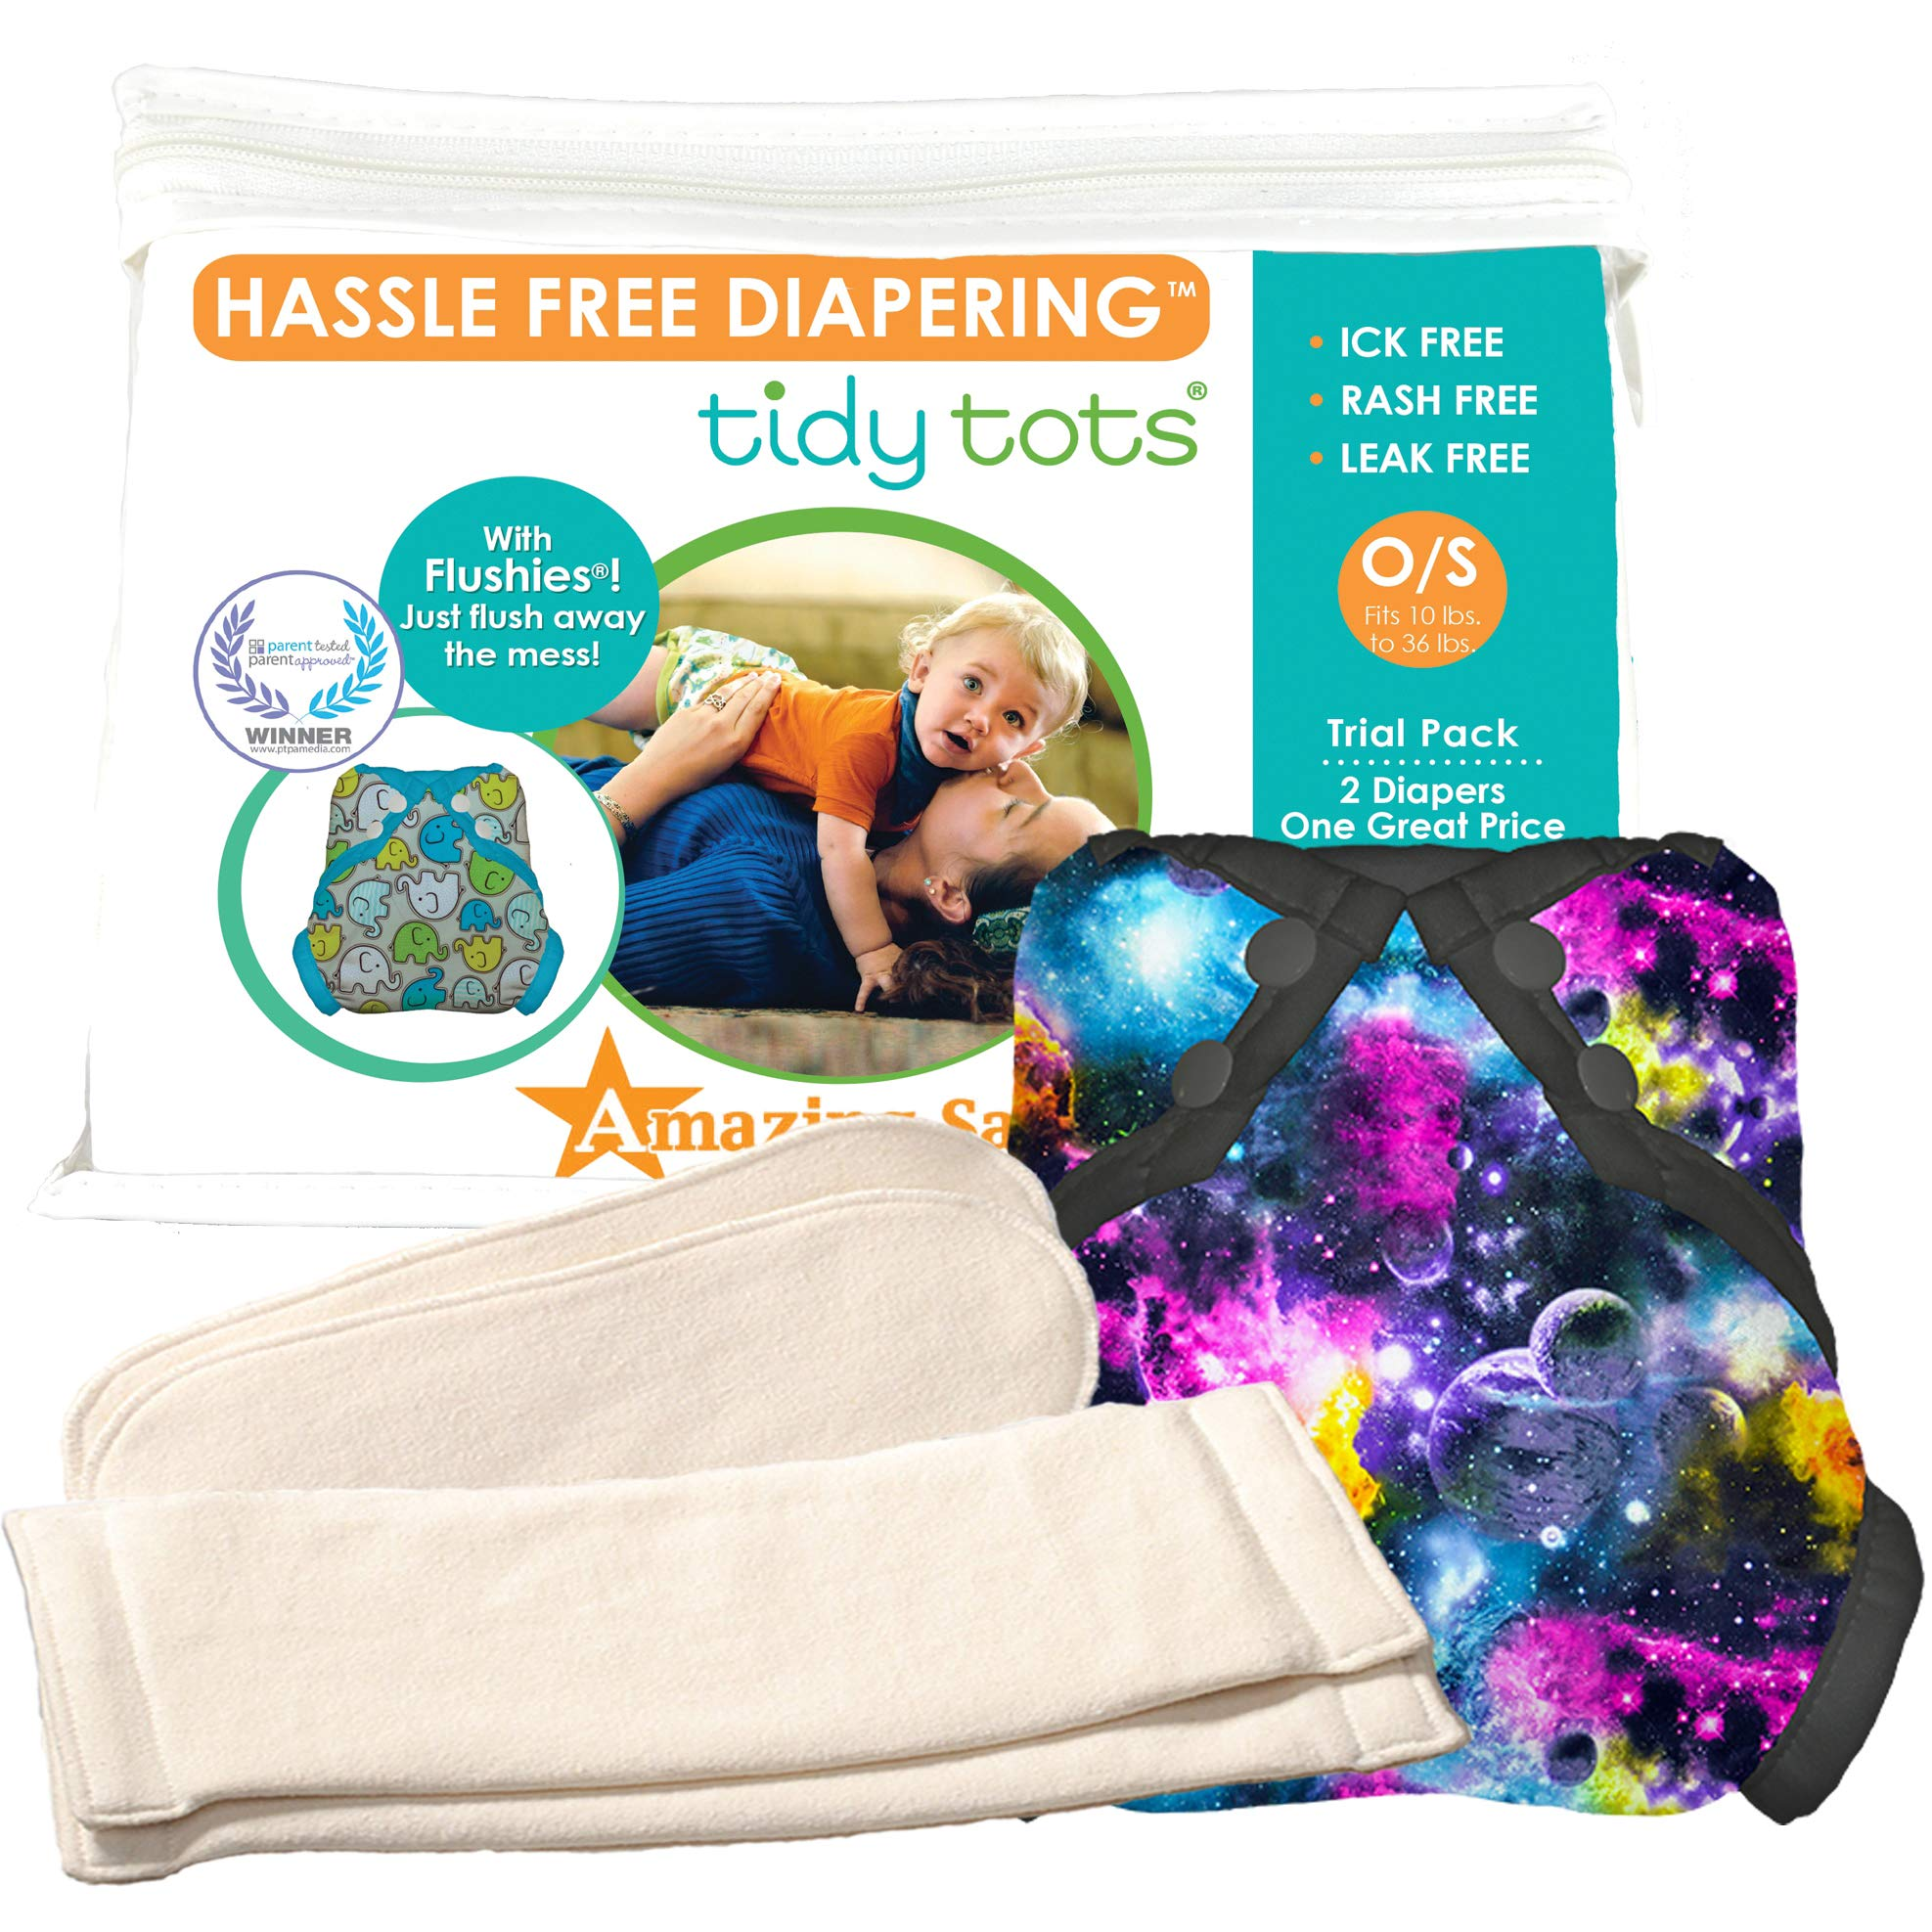 Tidy Tots Diapers Hassle Free 2 Diaper Trial Set (Black Galaxy)